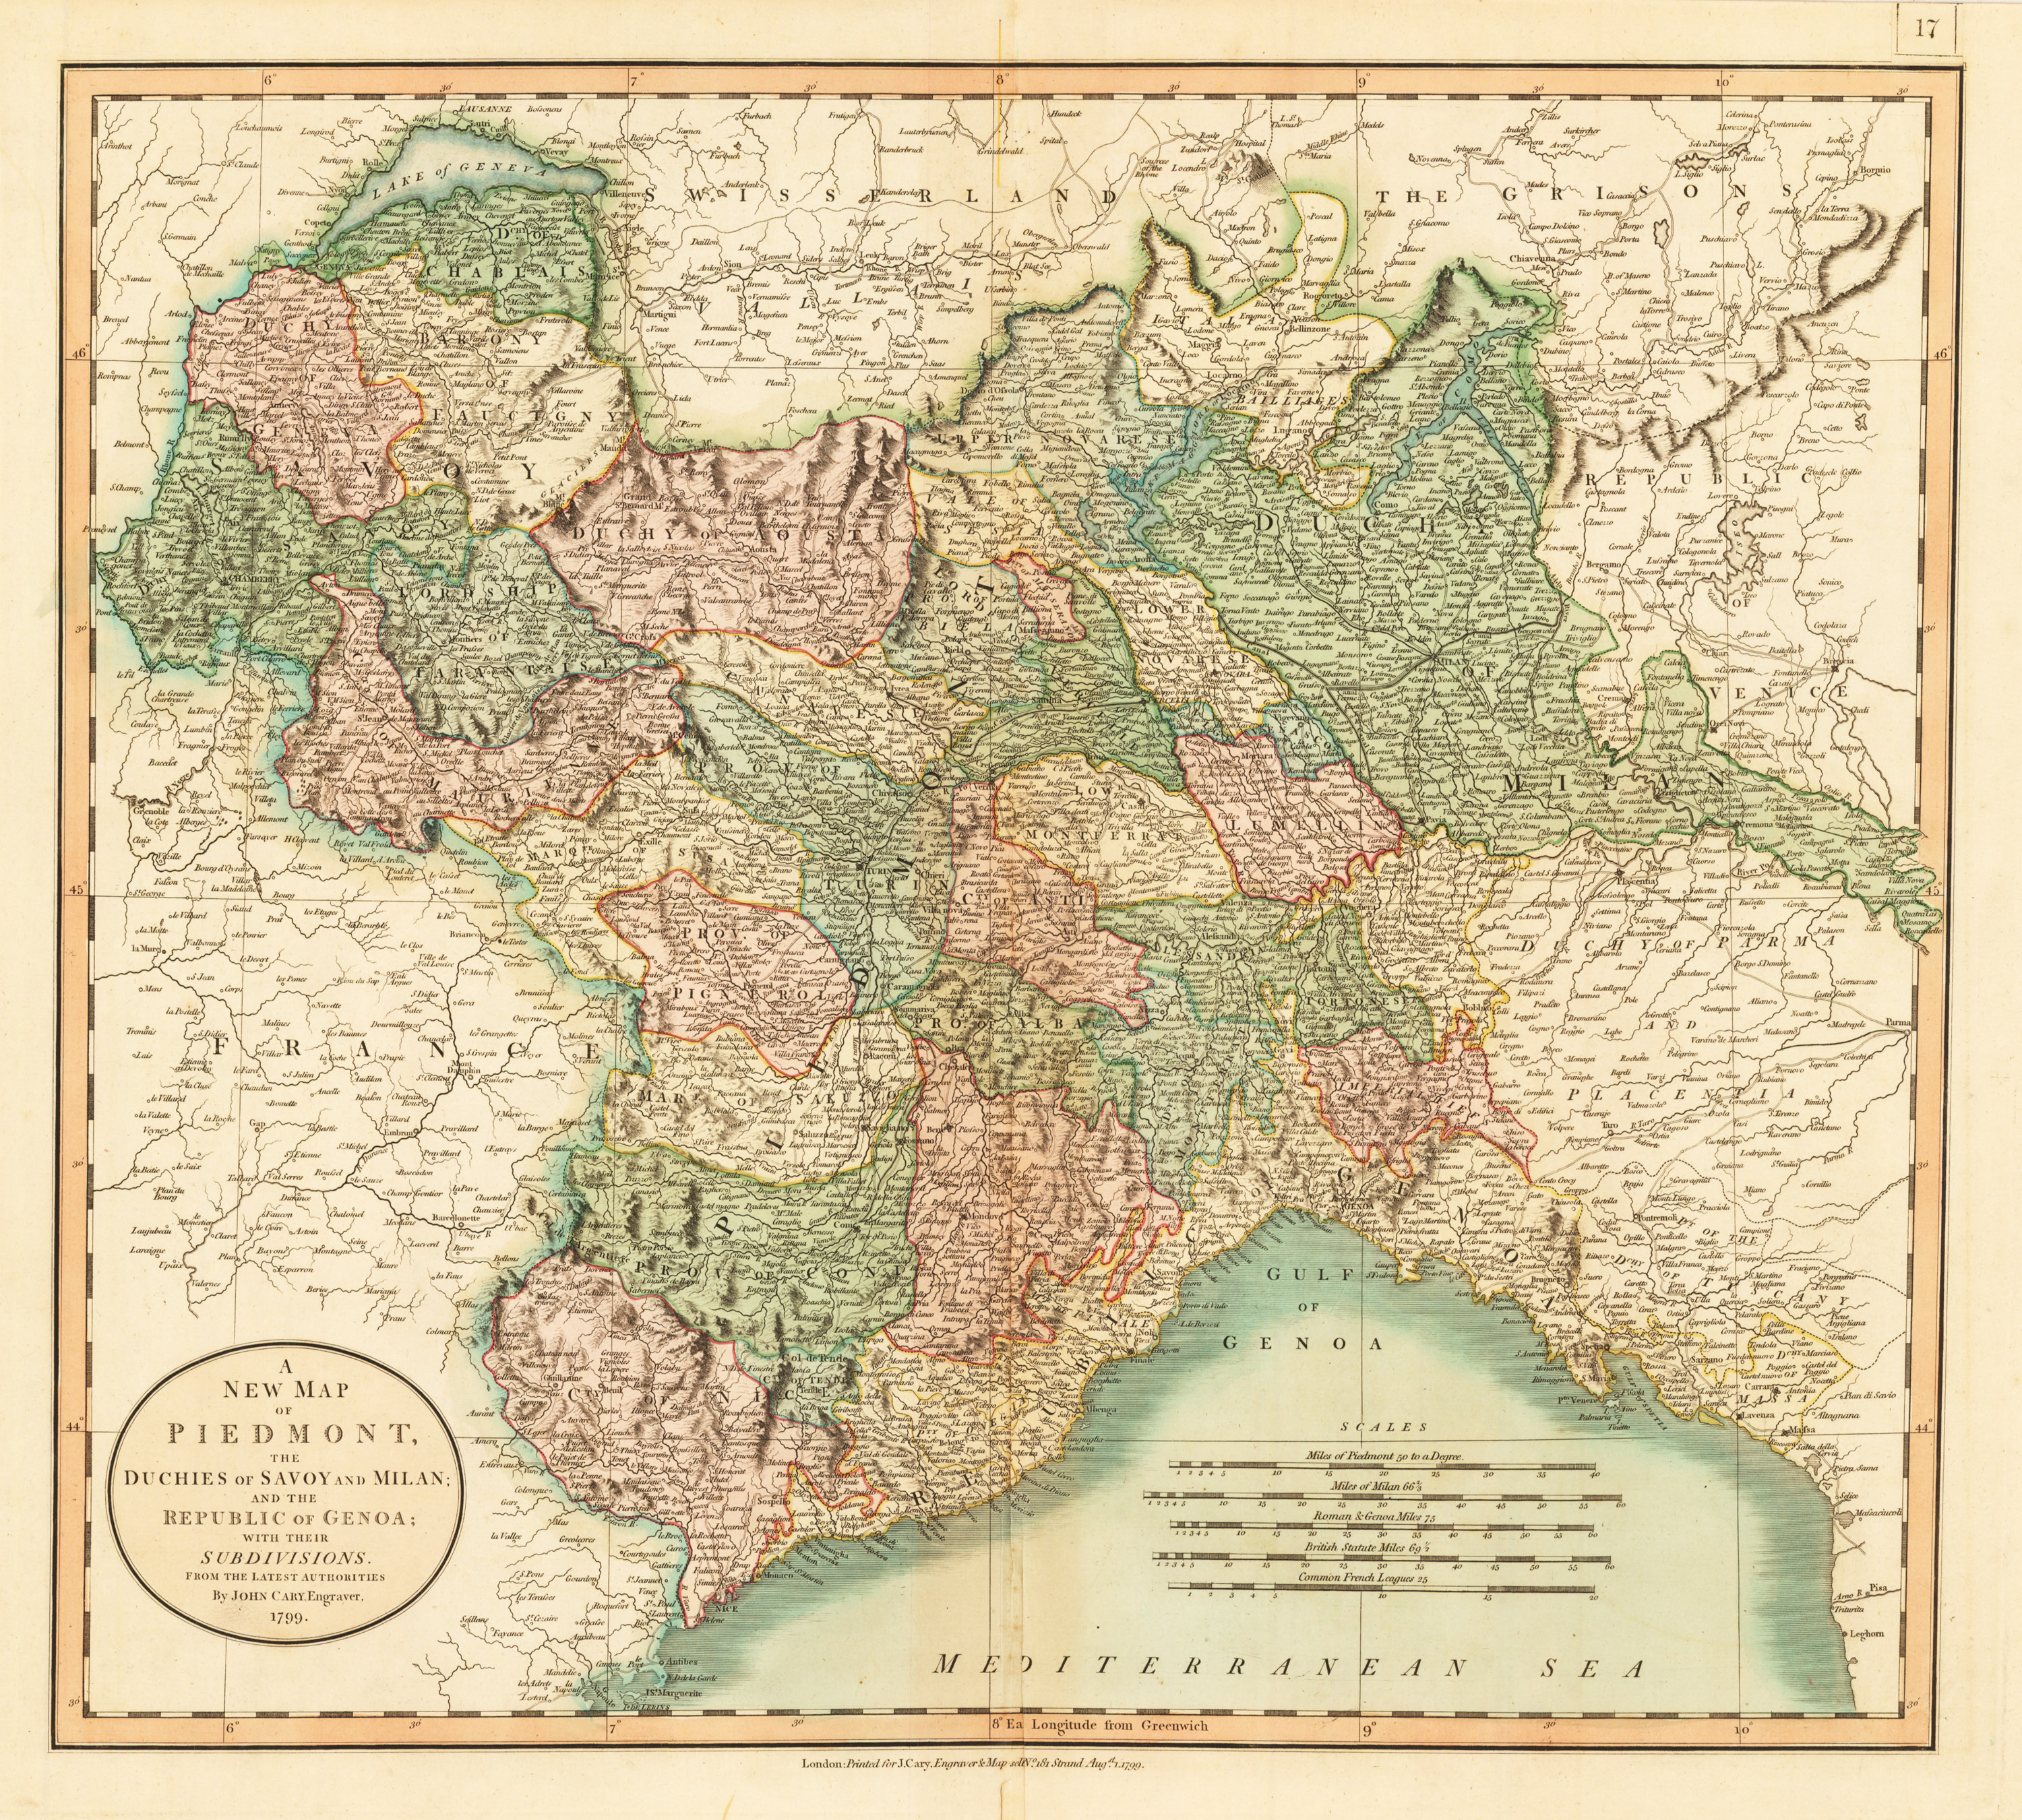 The New Map Of The World.1799 A New Map Of Piedmont The Duchies Of Savoy And Milan And The Republic Of Genoa With Their Subdivisions From The Latest Authorities